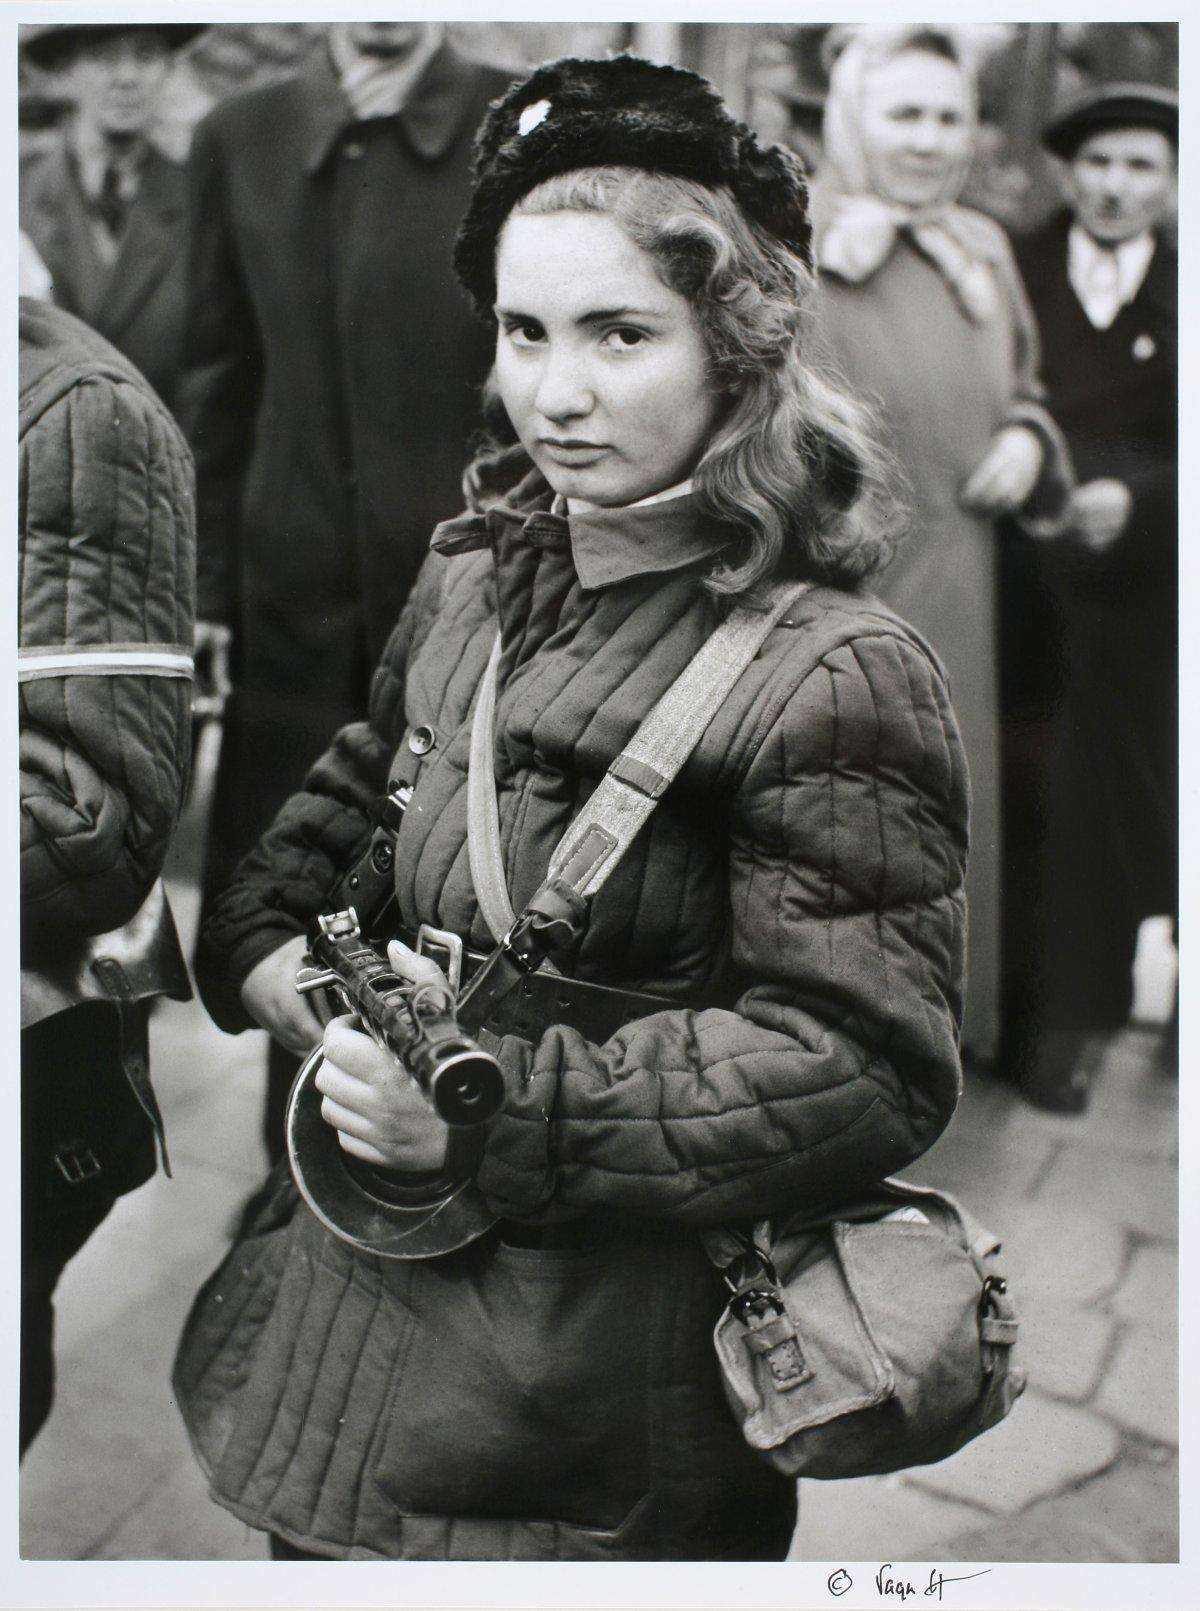 15 year old Hungarian freedom fighter Budapest 1956